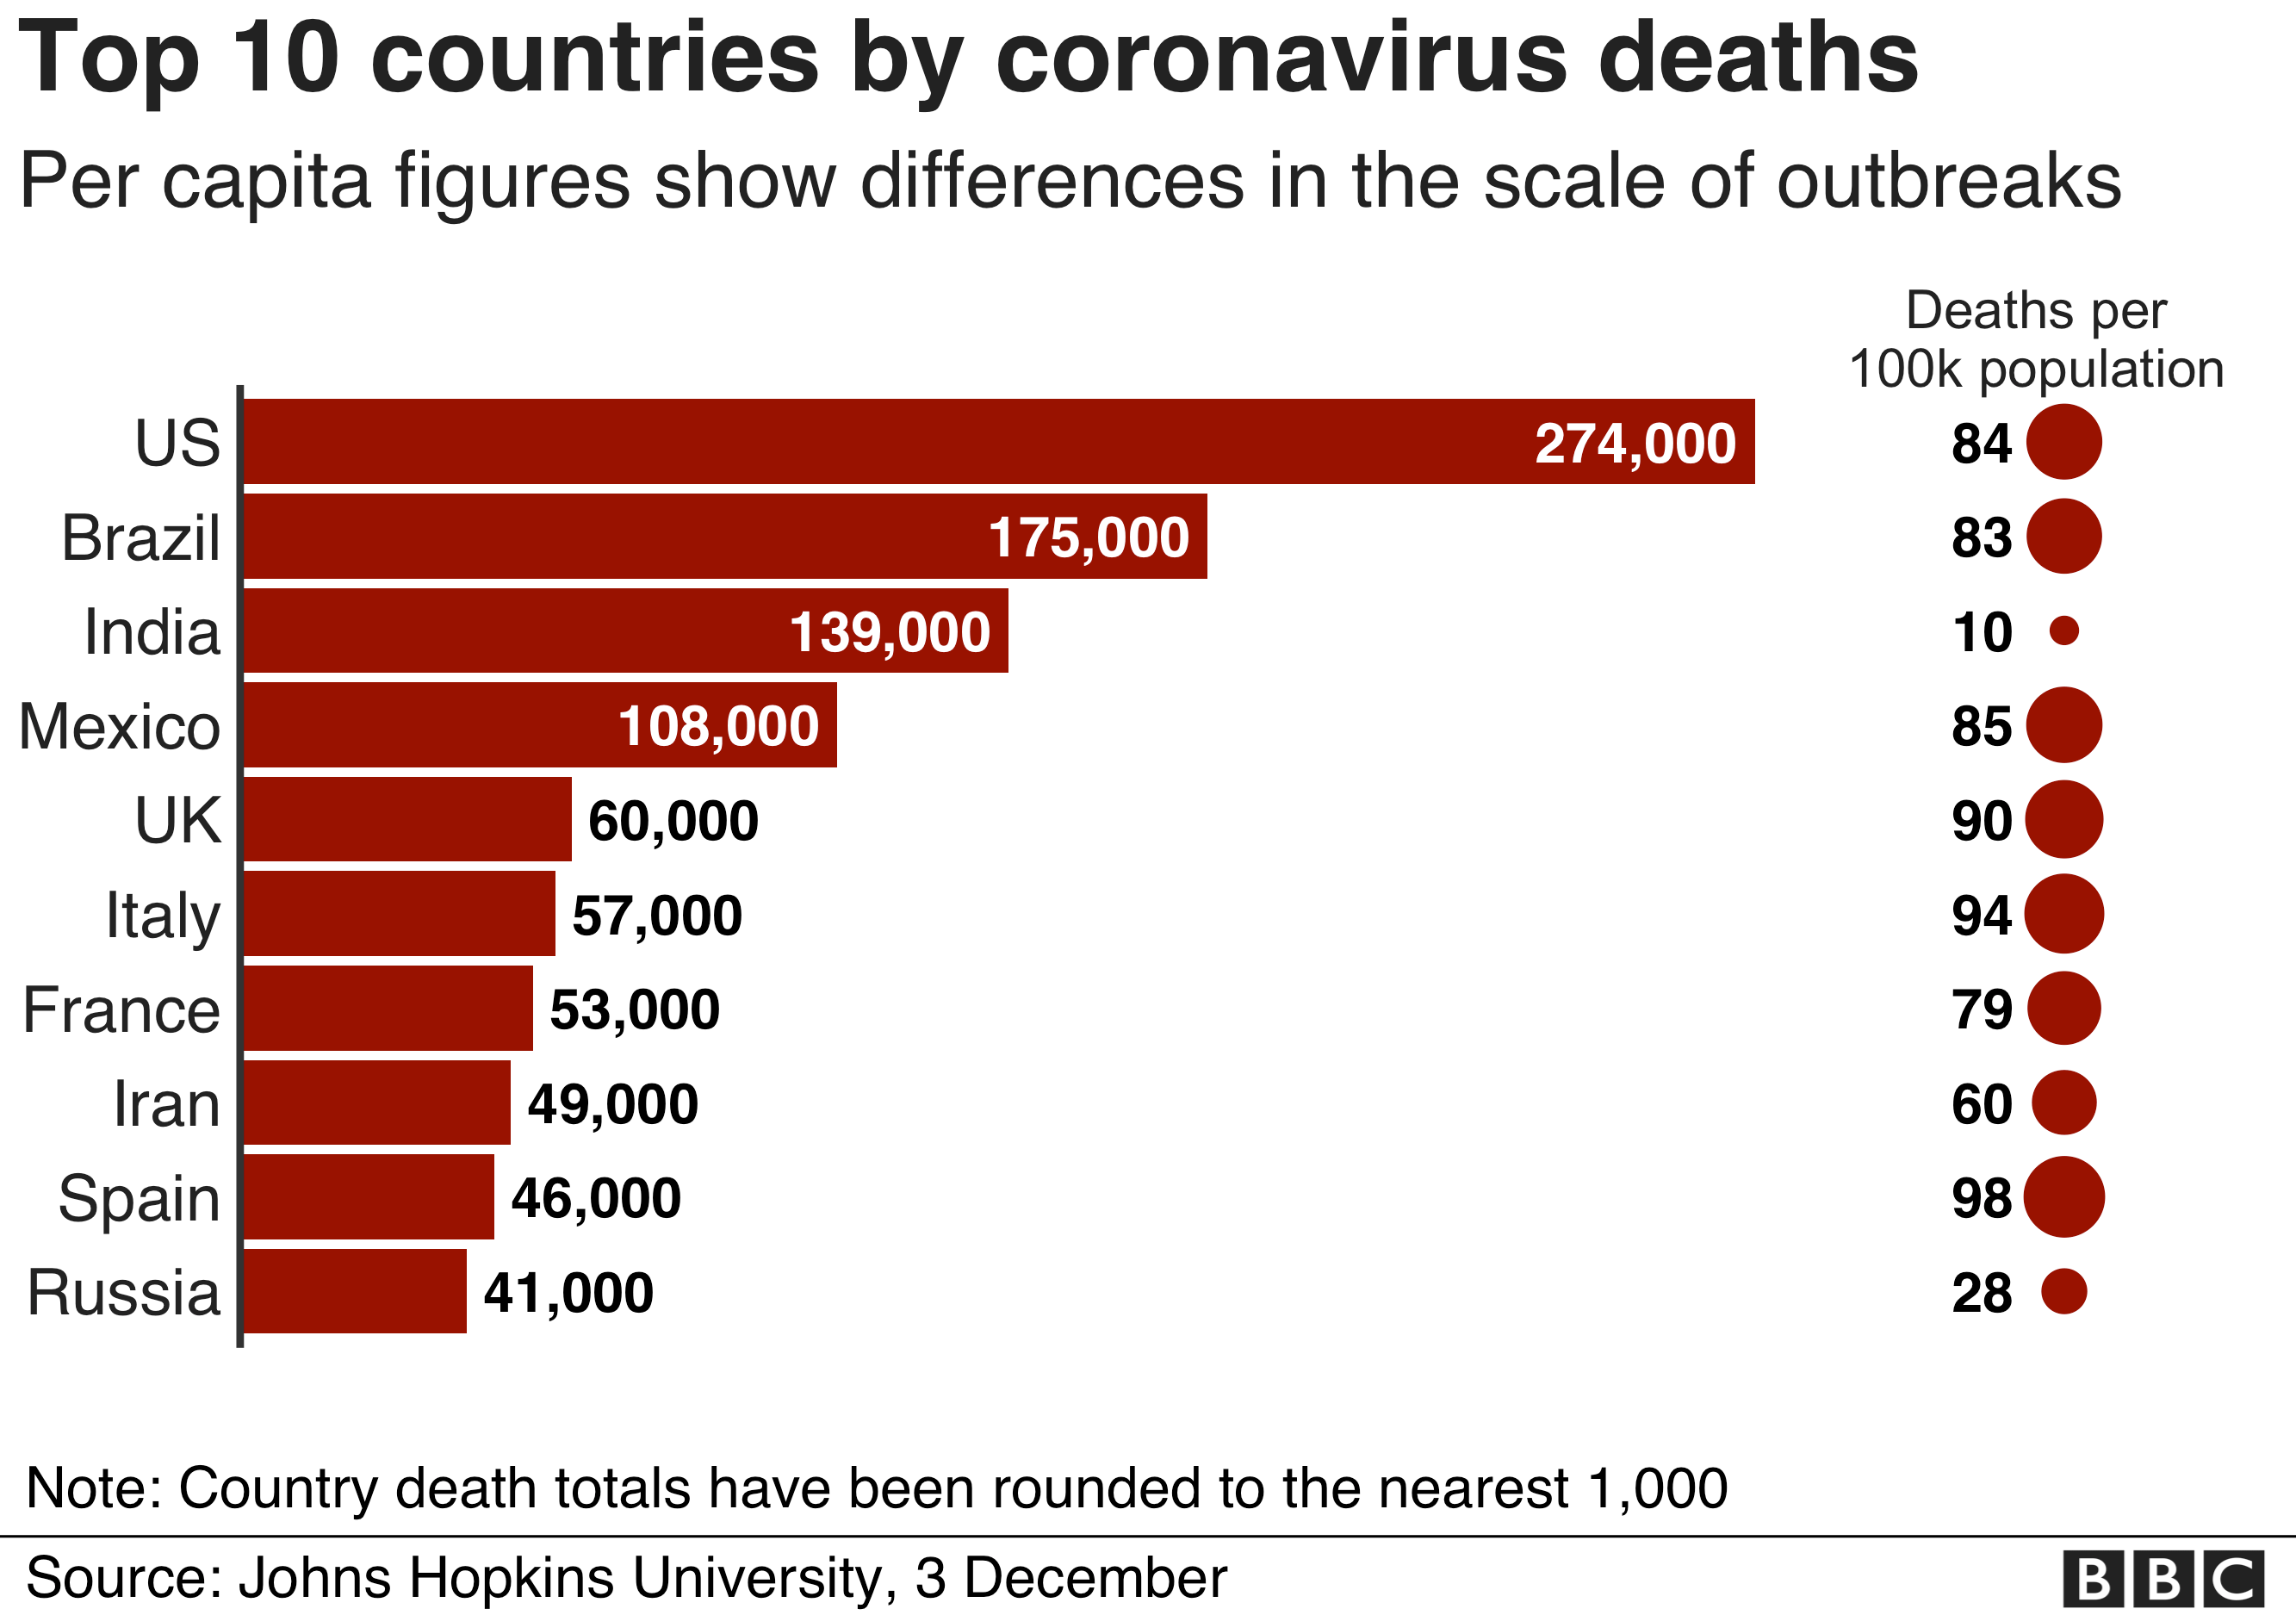 Covid-19: UK surpasses 60,000 deaths thumbnail